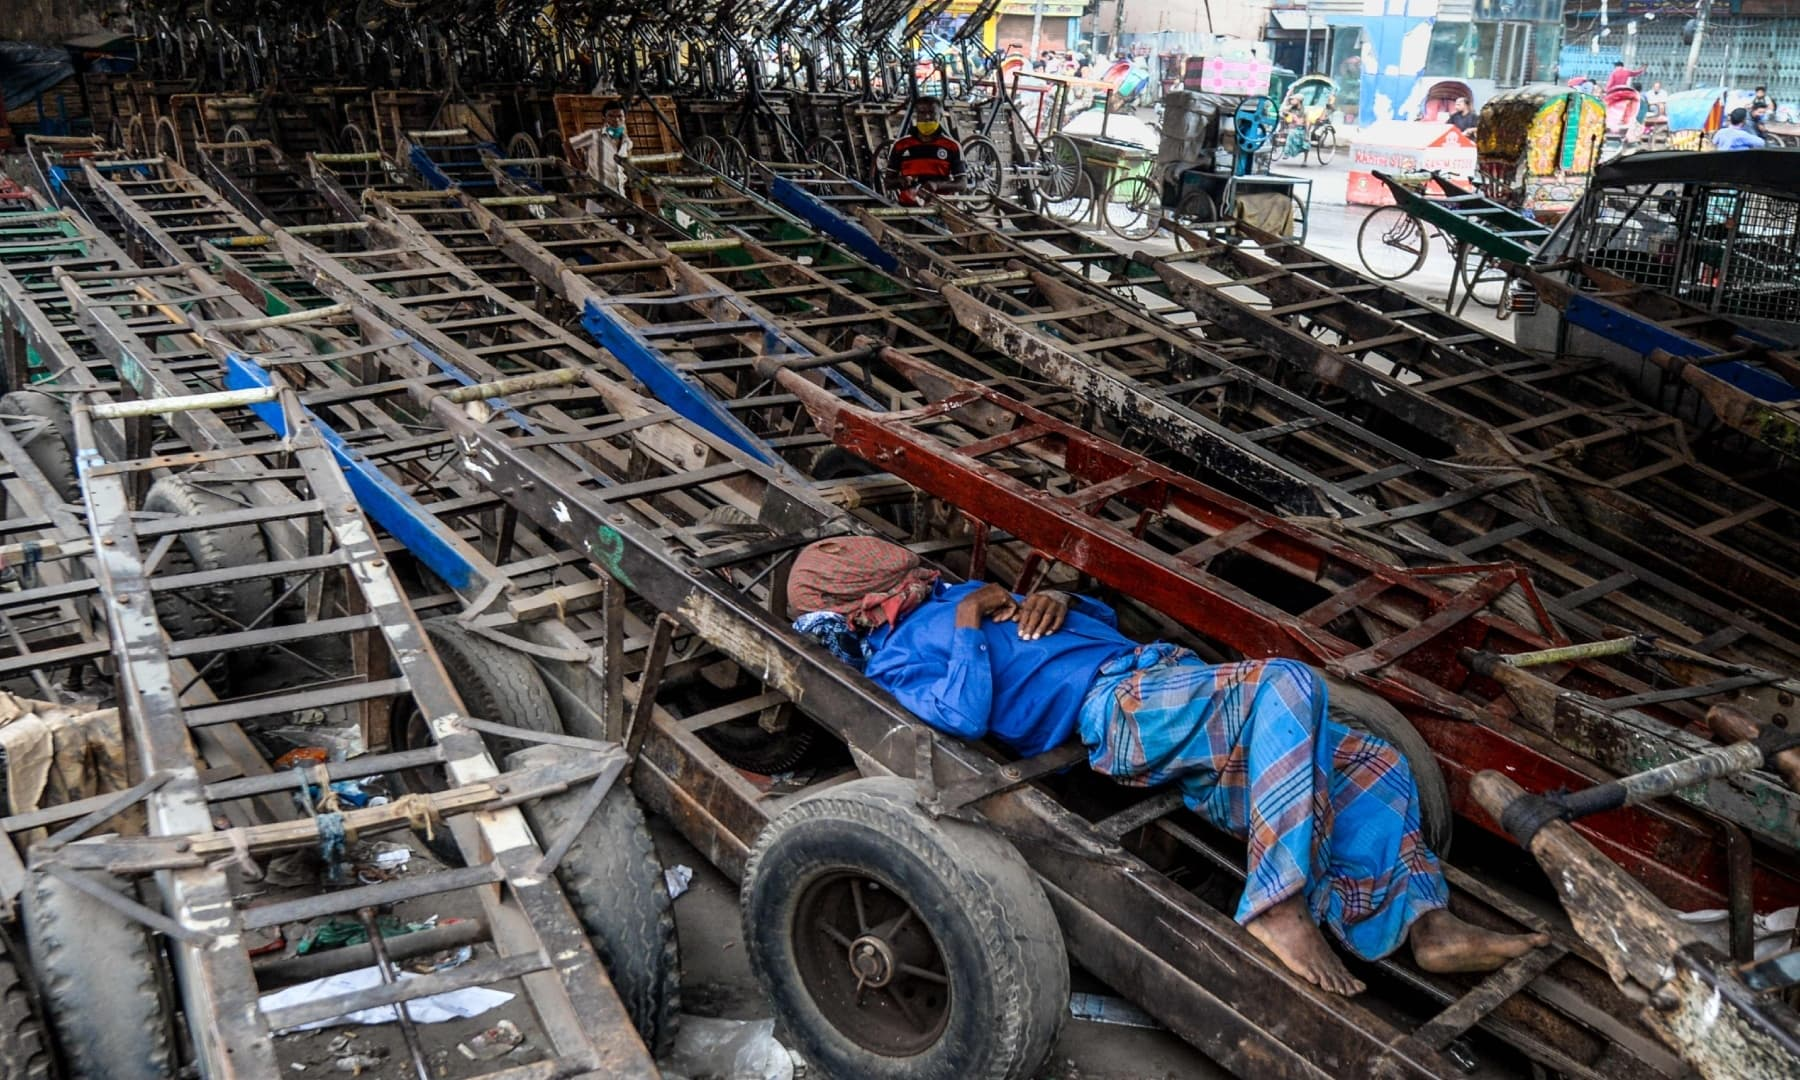 A labourer sleeps on a pushcart on Labour Day in Dhaka, Bangladesh. — AFP